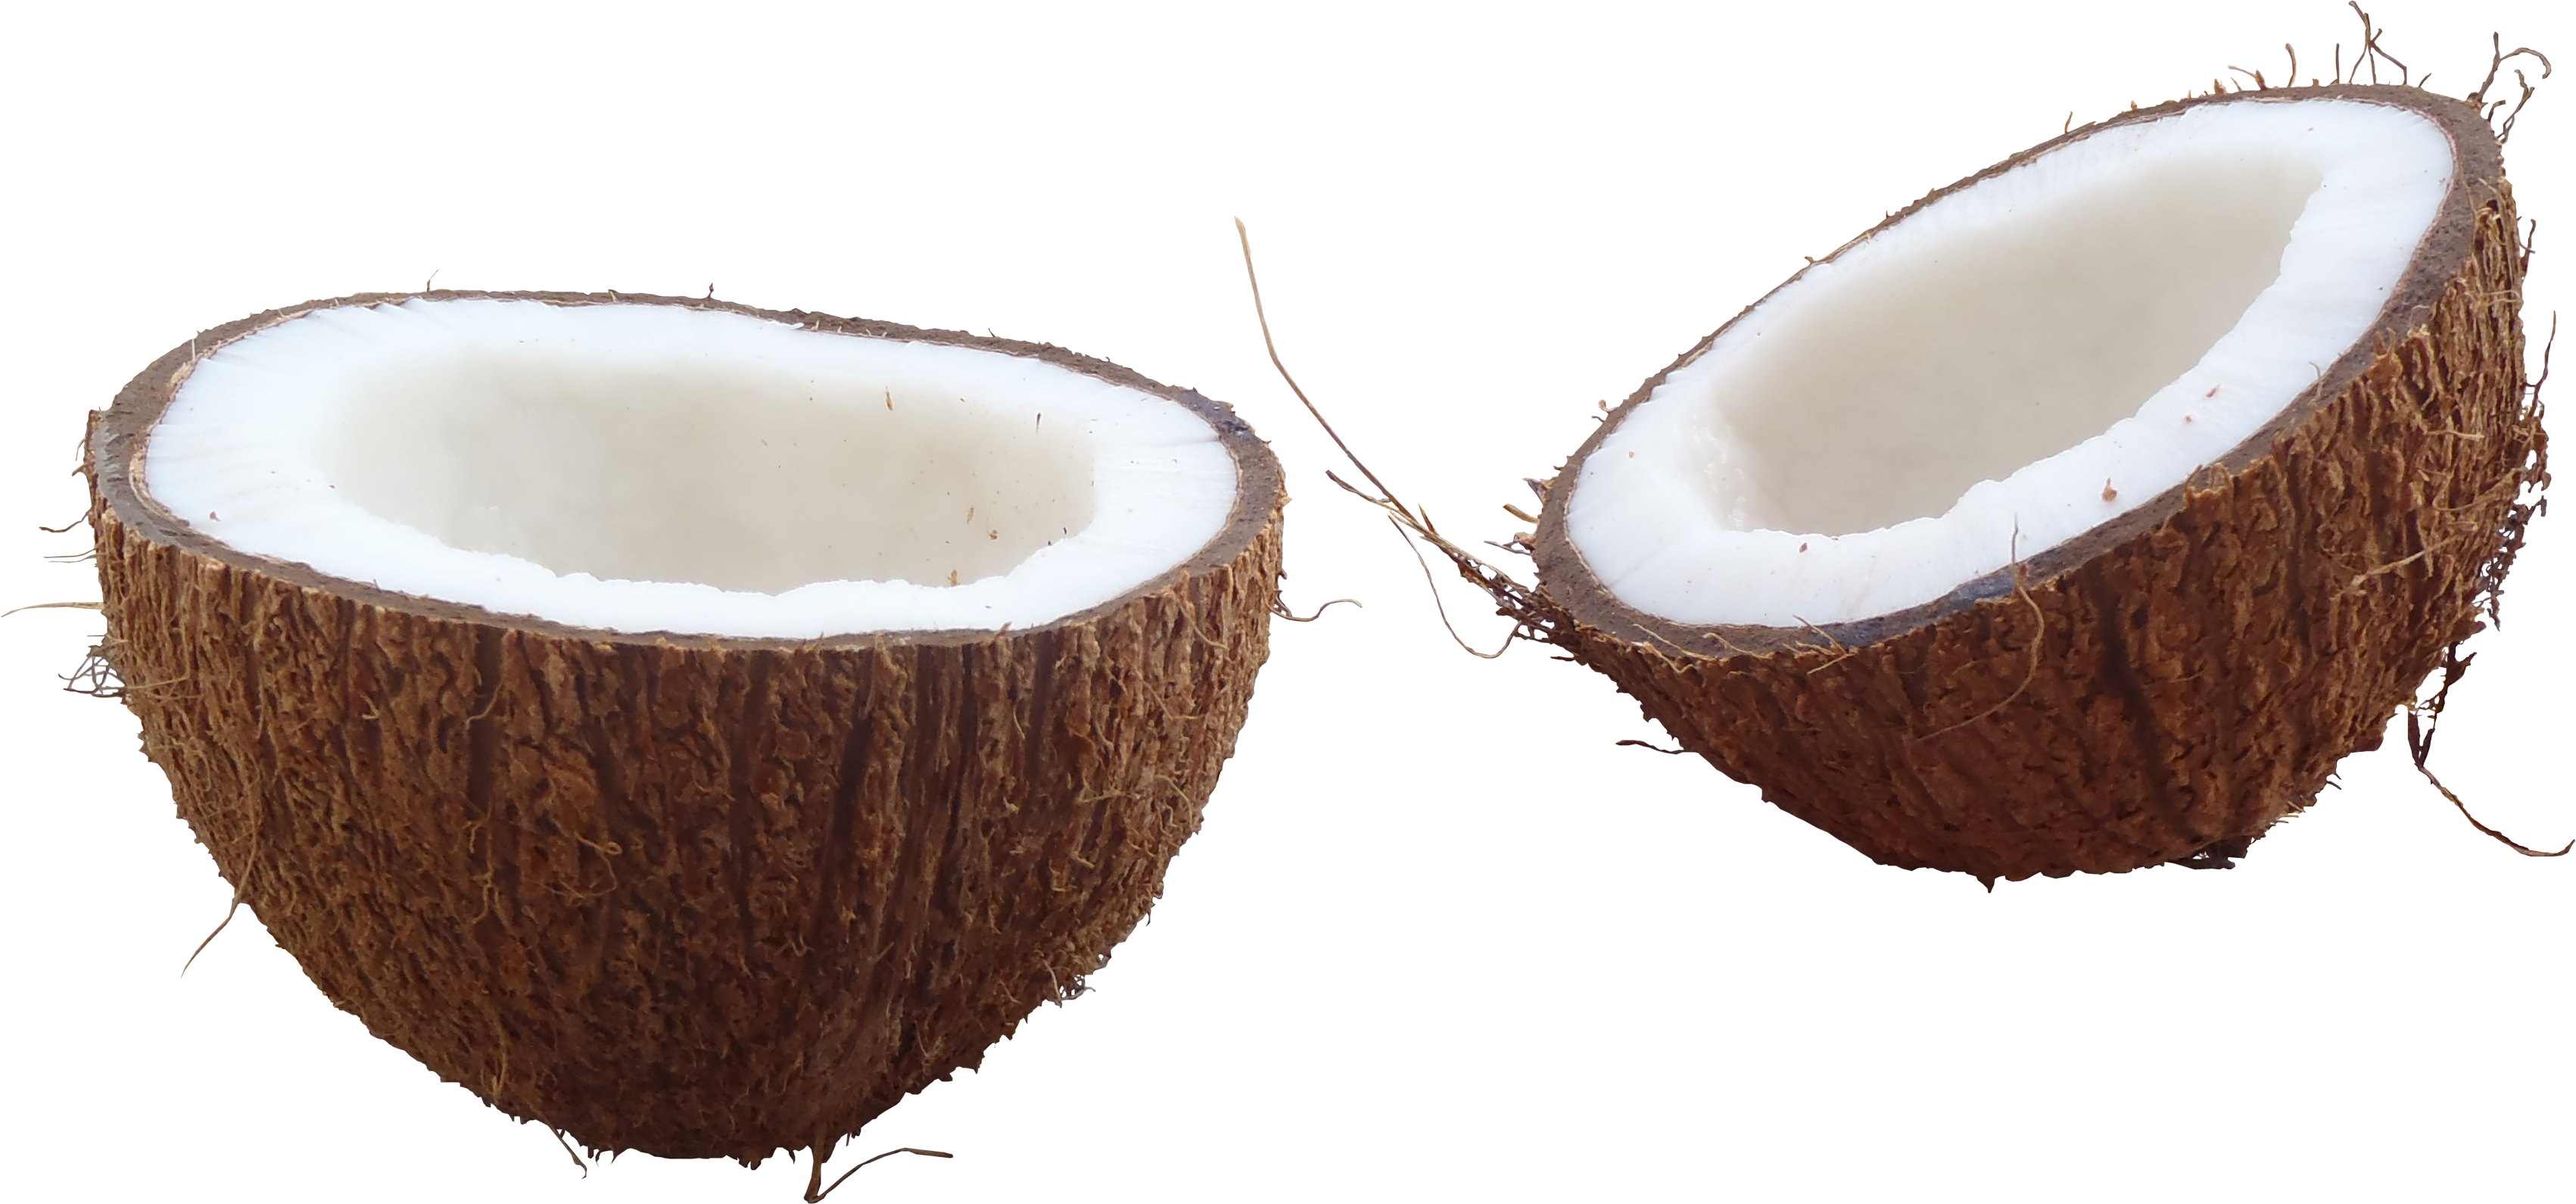 Coconut Png Hd Png Image - Coconut, Transparent background PNG HD thumbnail